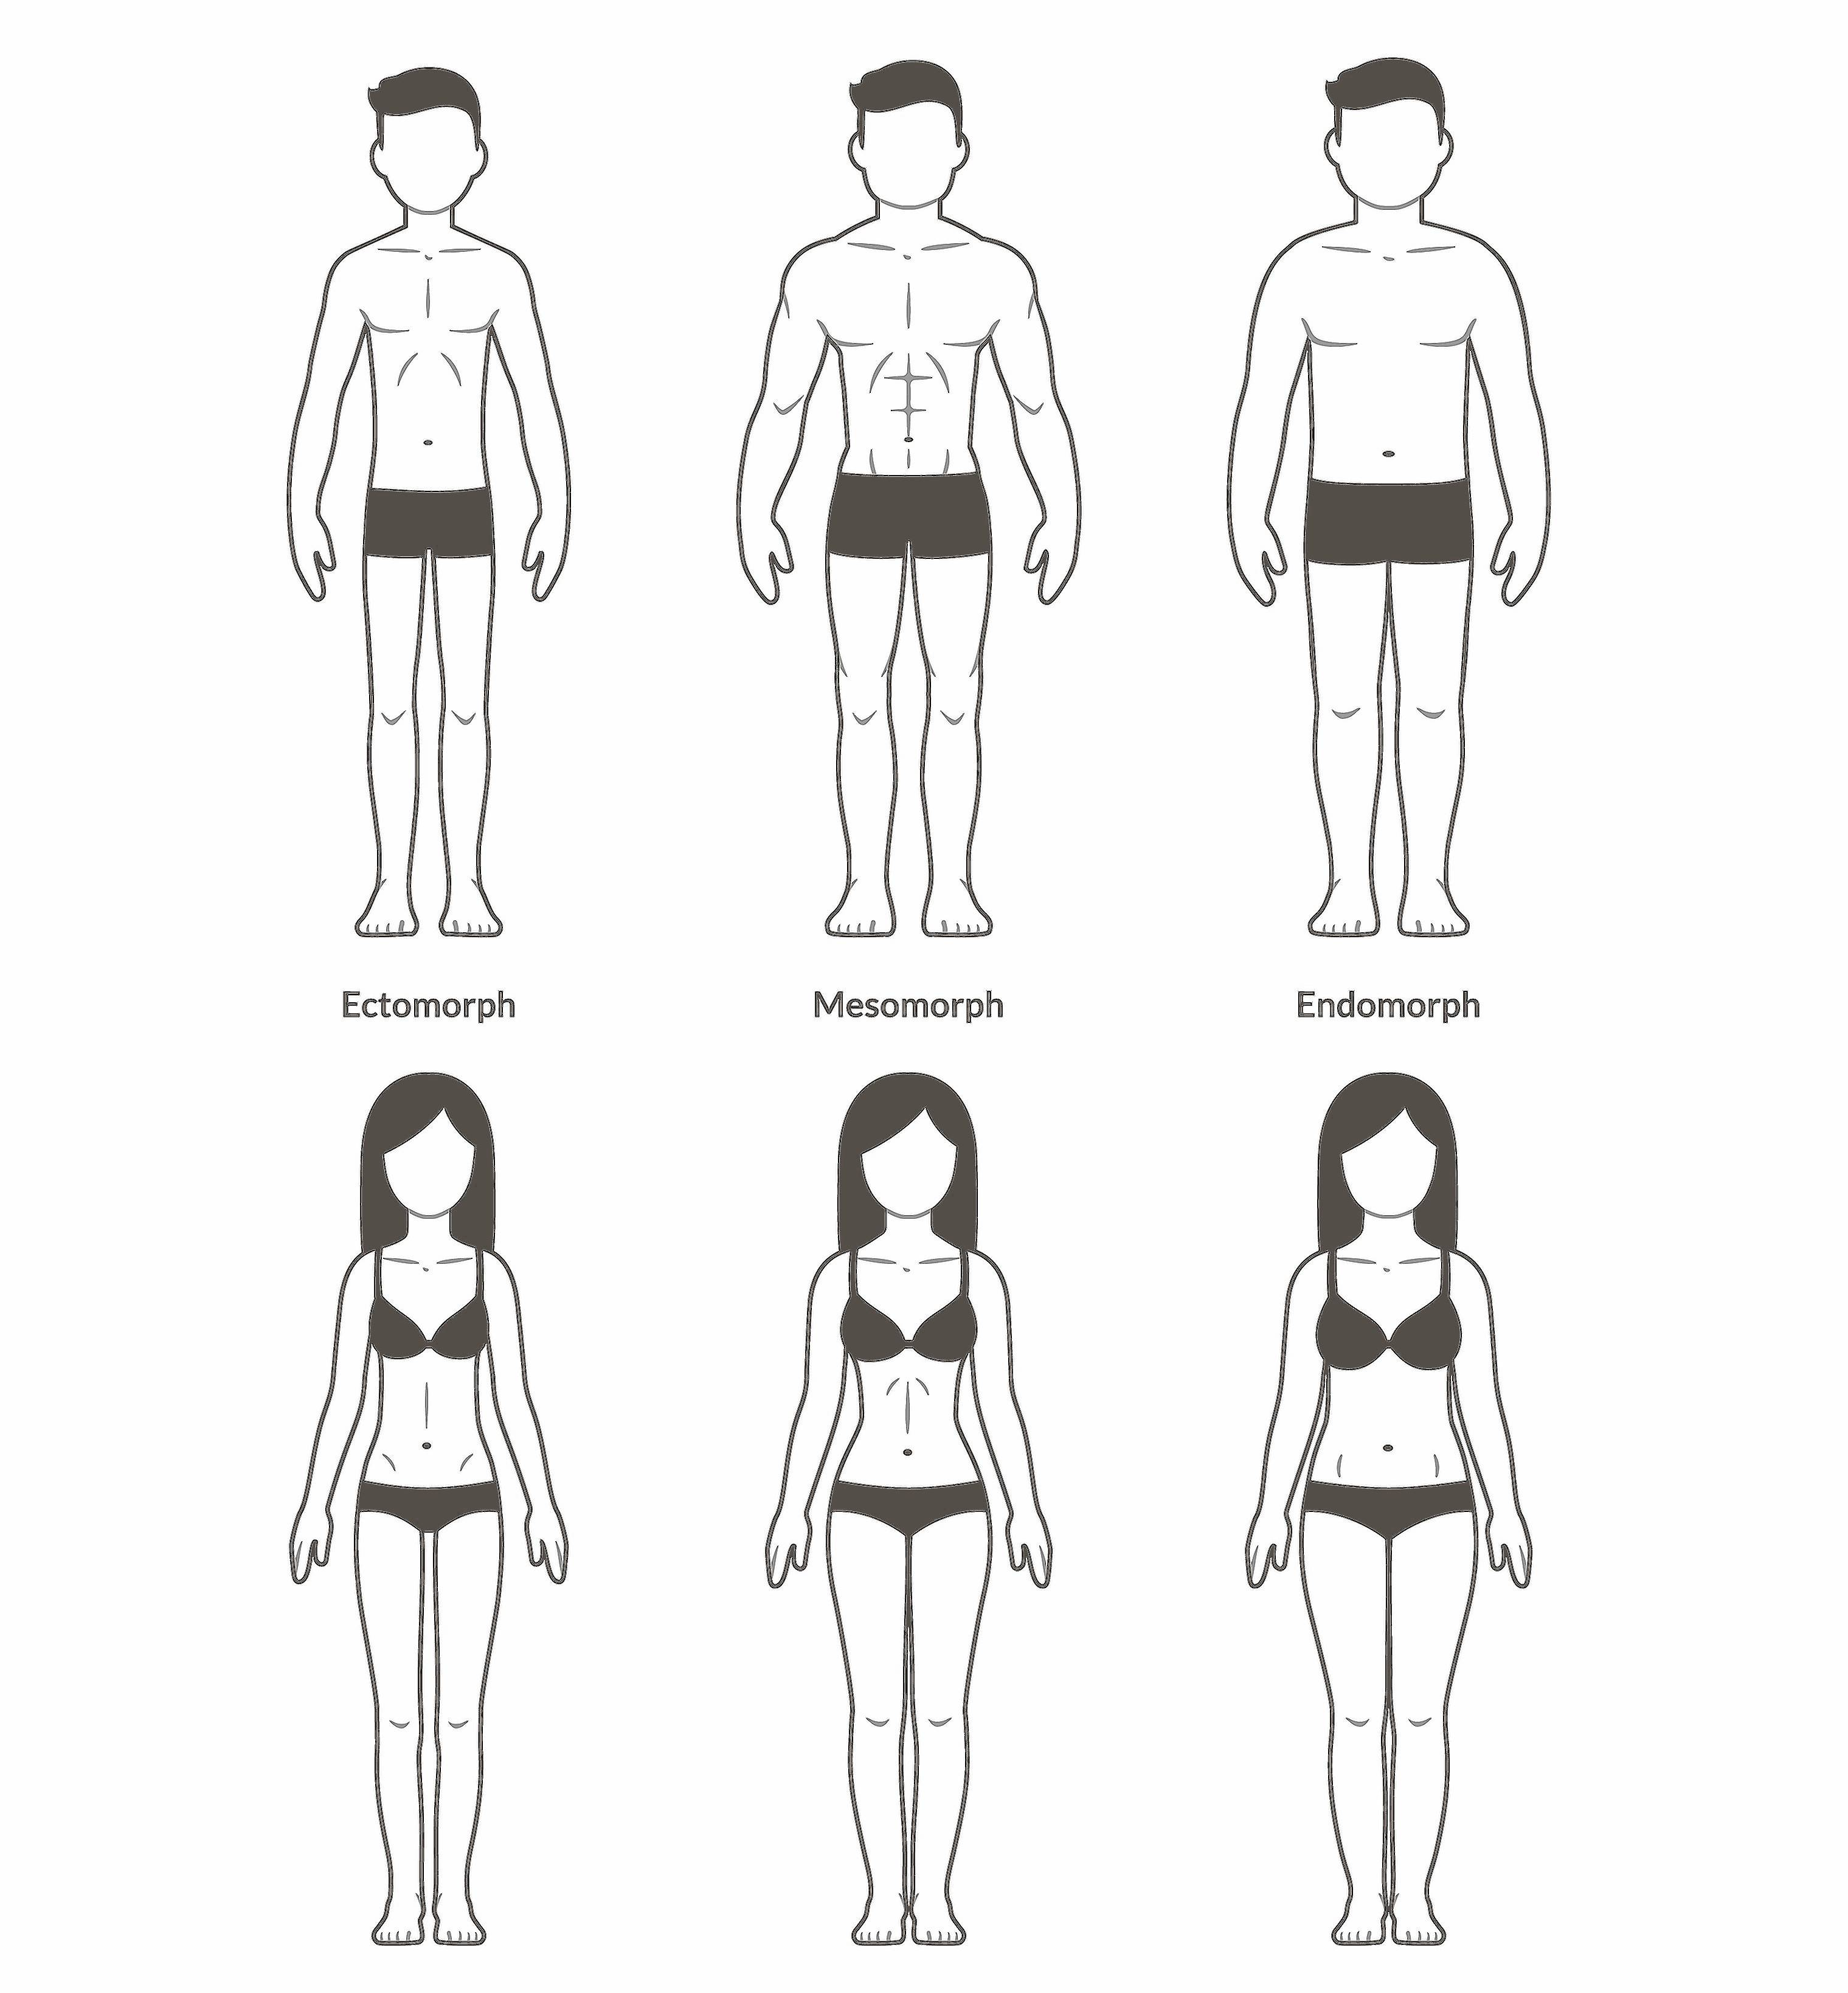 Male and female body types: ectomorph, mesomorph and endomorph.